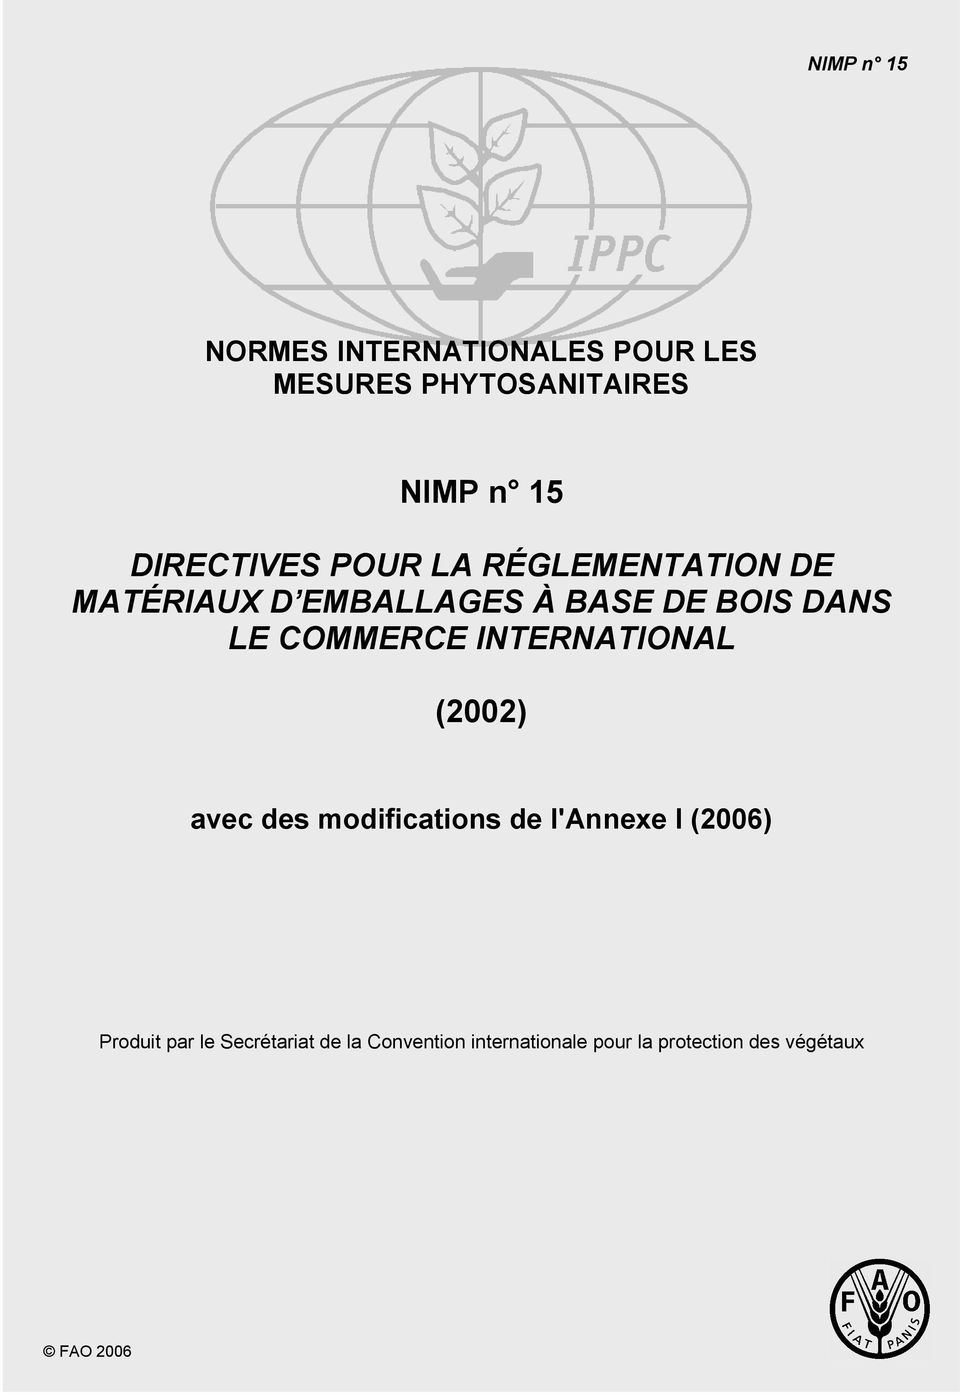 COMMERCE INTERNATIONAL (2002) avec des modifications de l'annexe I (2006) Produit